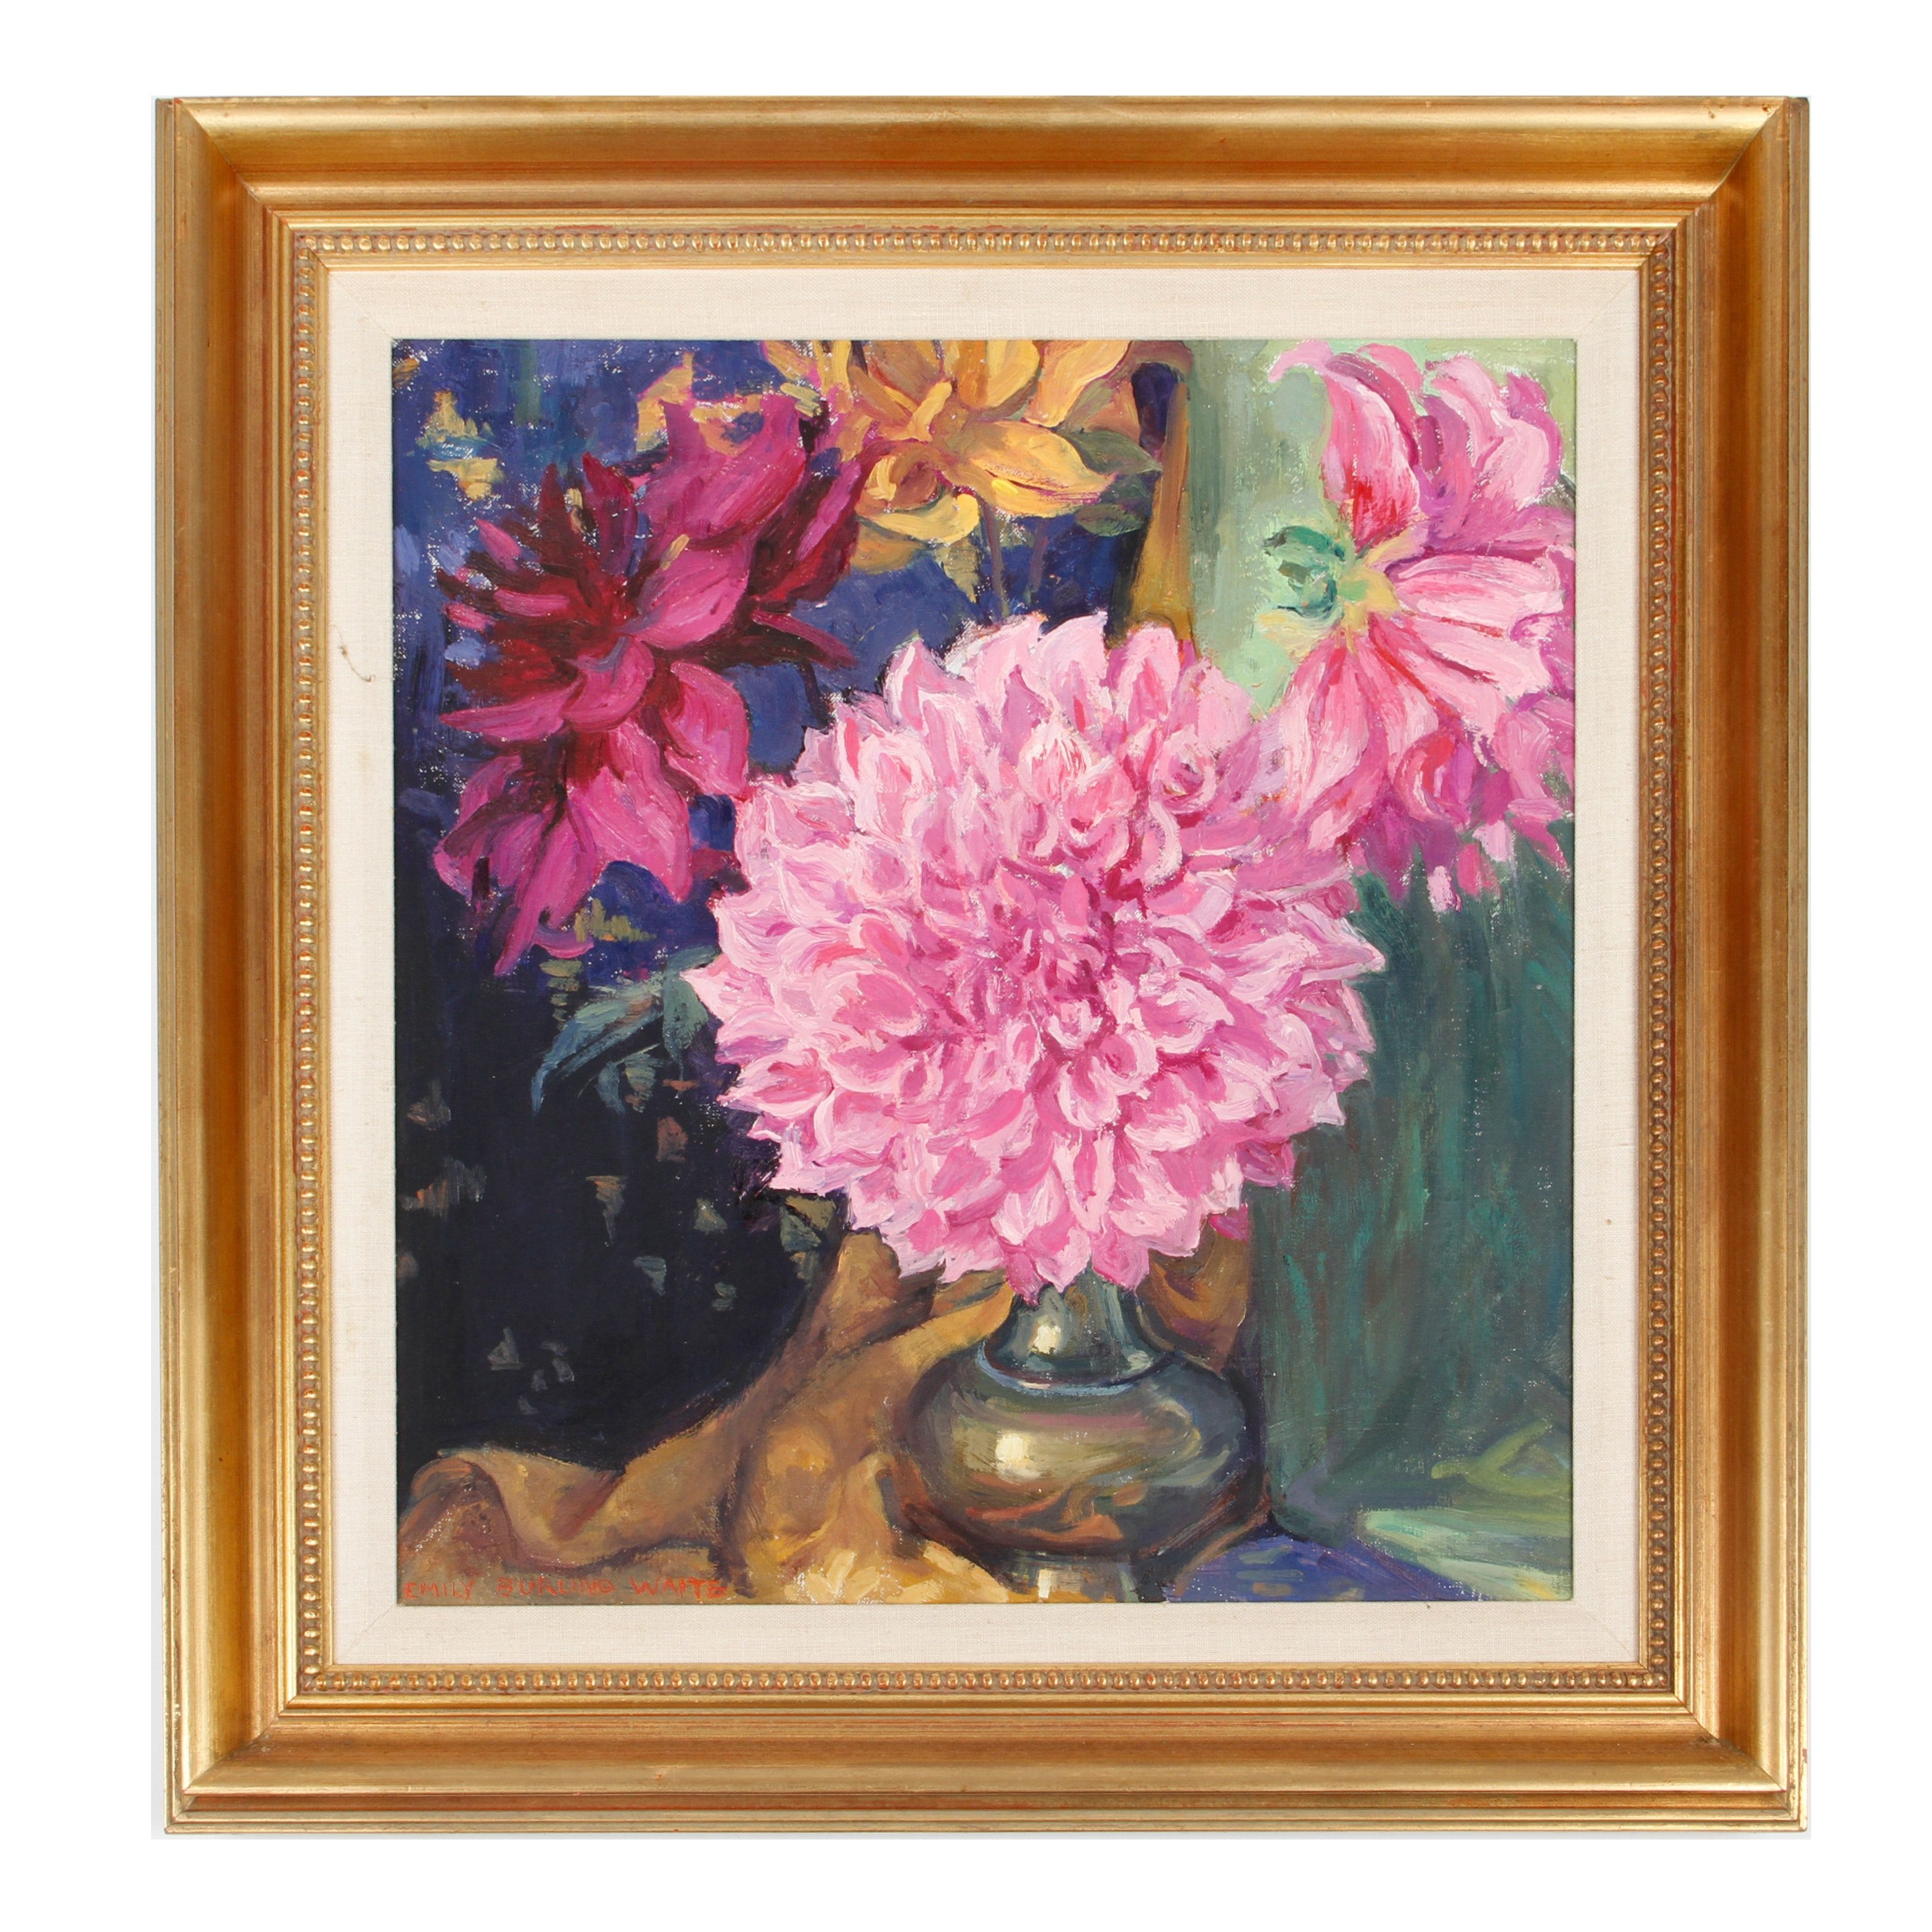 Emily B. Waite Oil Painting on Canvas of Dalias in a Vase